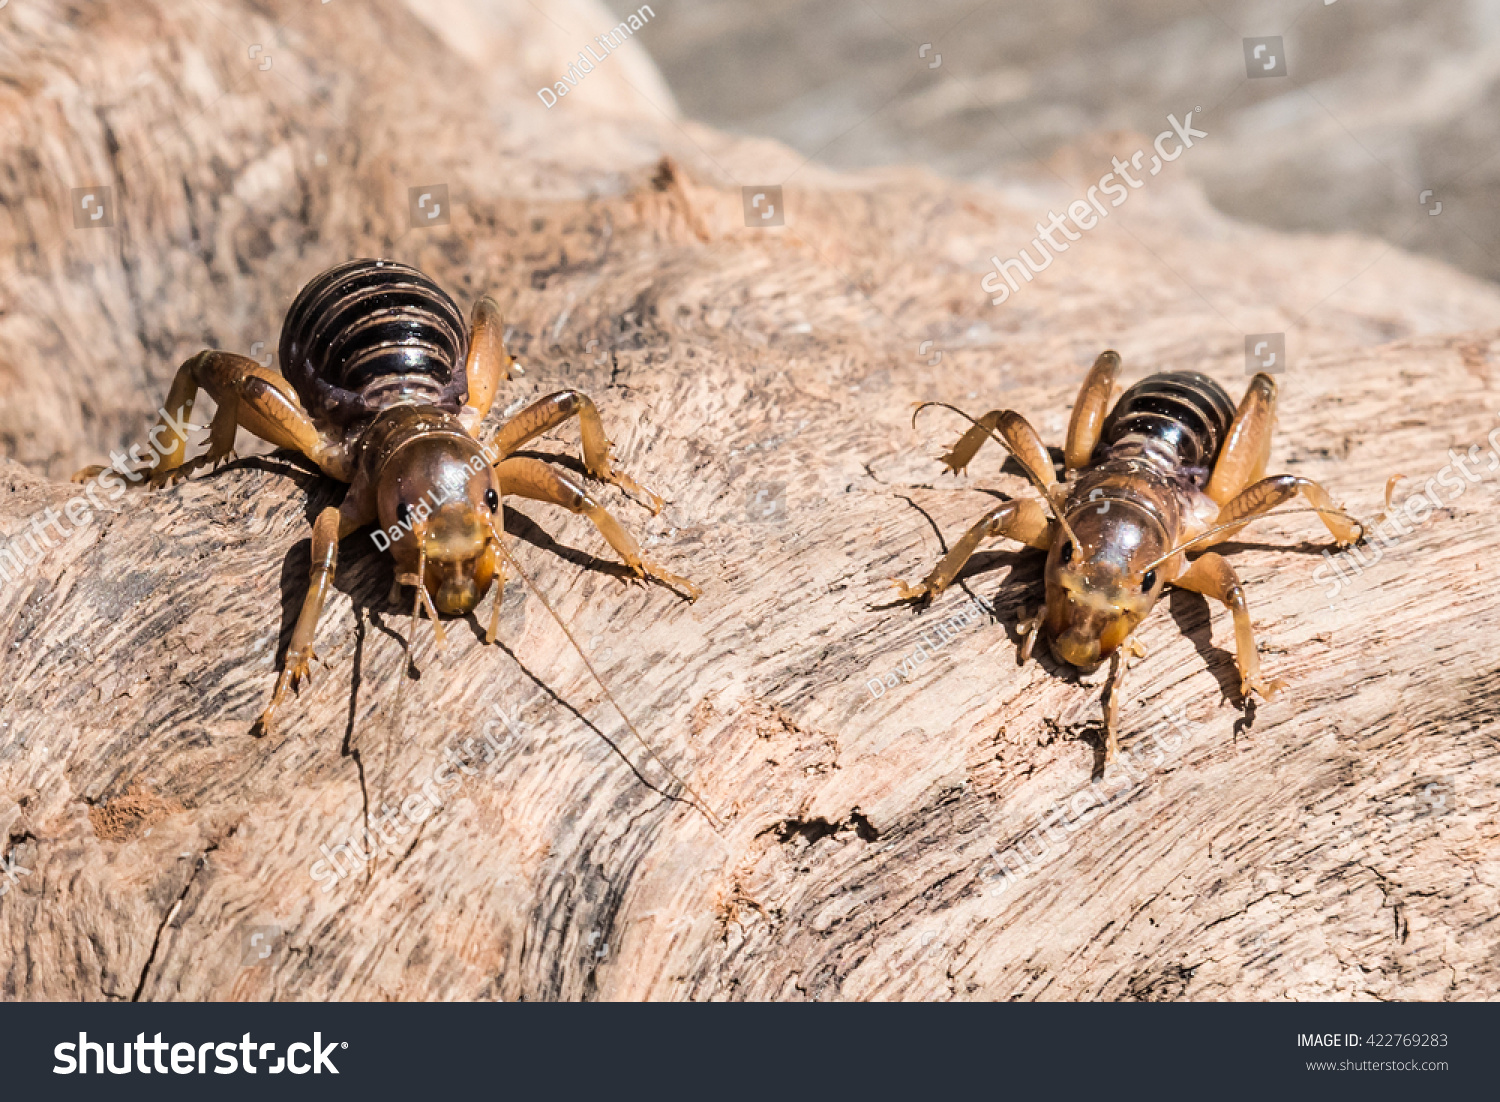 "Jerusalem Crickets (Stenopelmatus cahuilaensis), commonly referred to as ""potato bugs"" are not truly crickets."